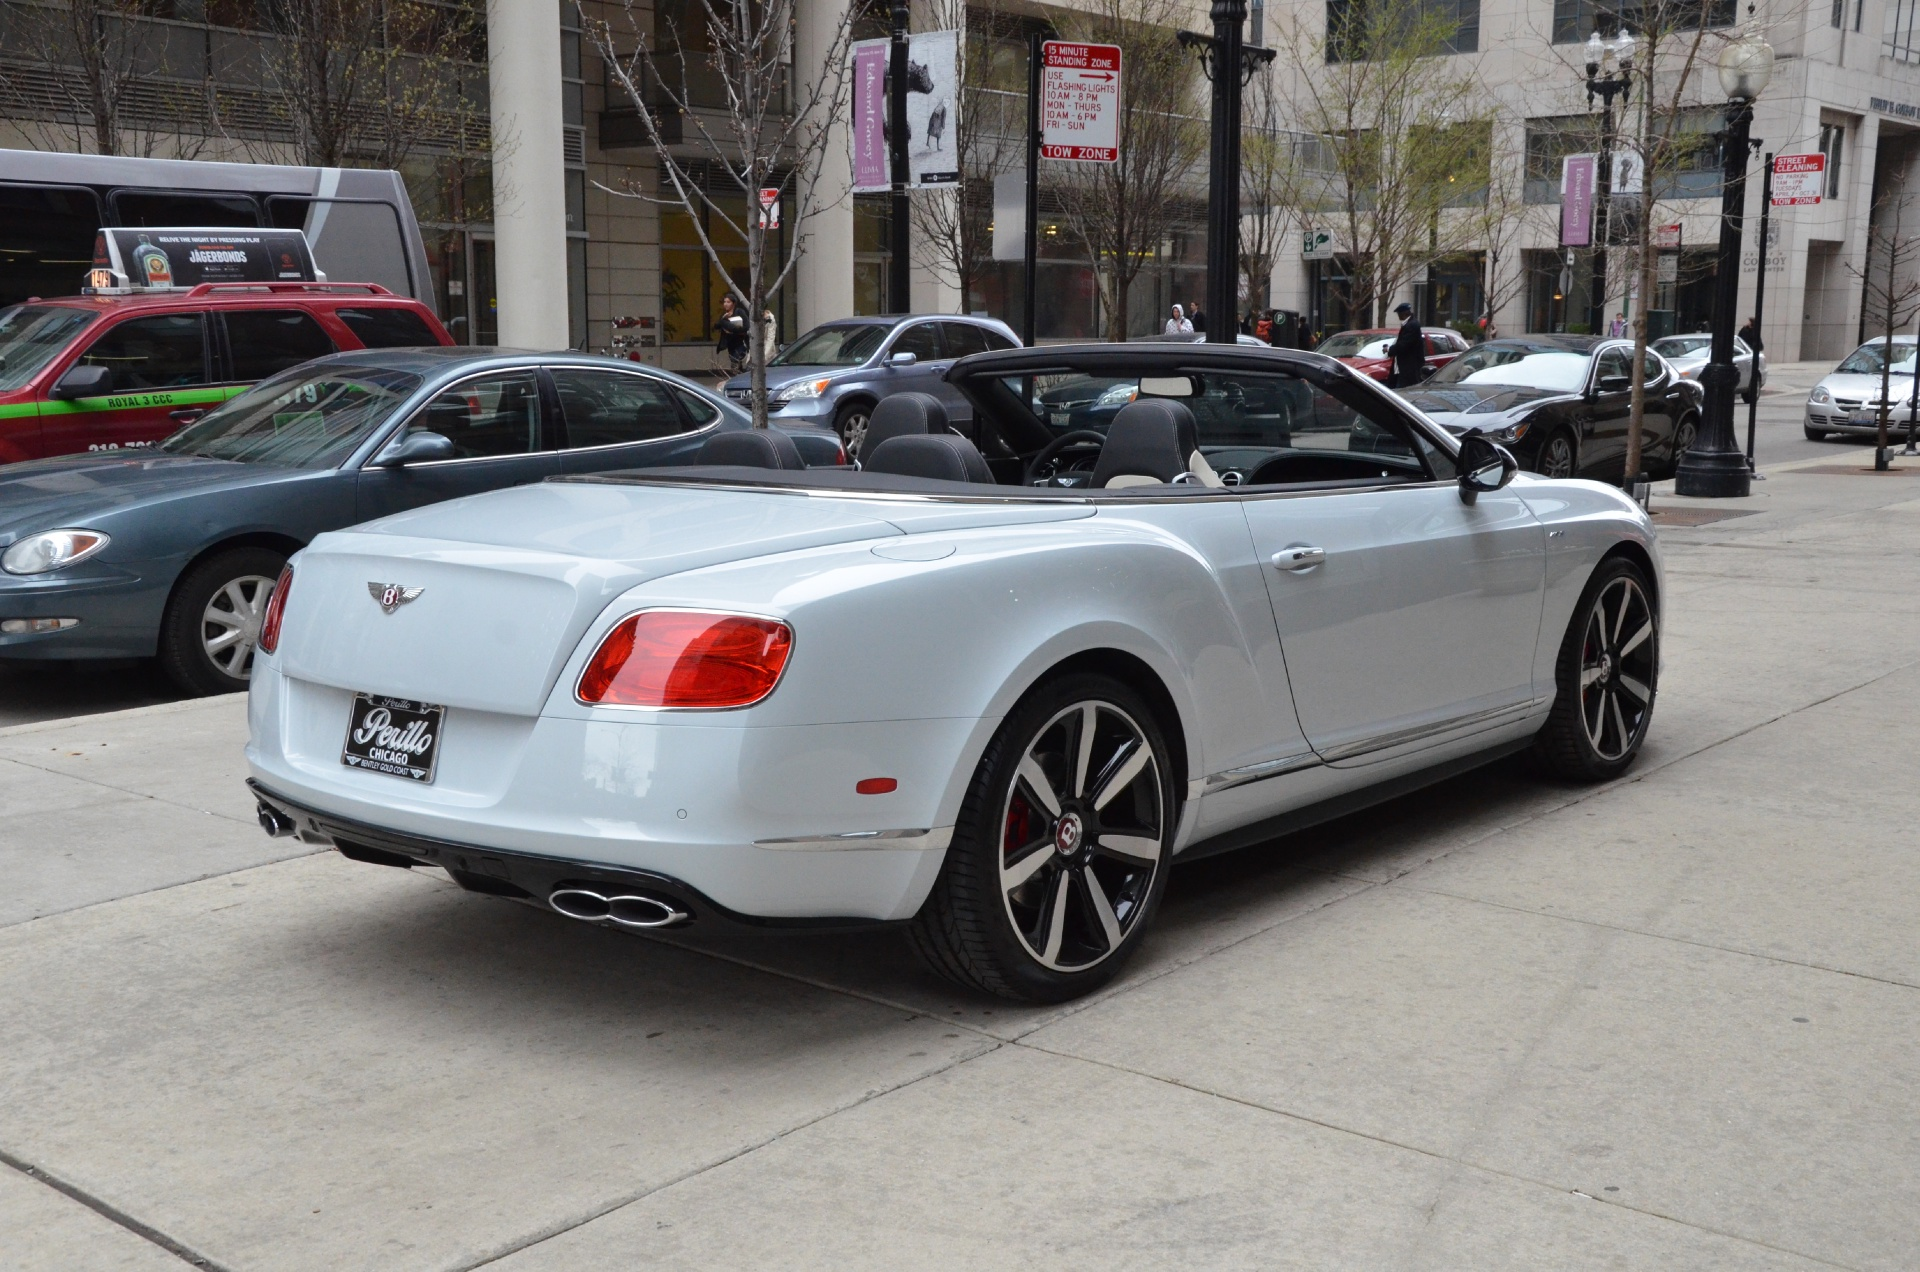 2014 Bentley Continental Gtc V8 S Stock B591 S For Sale